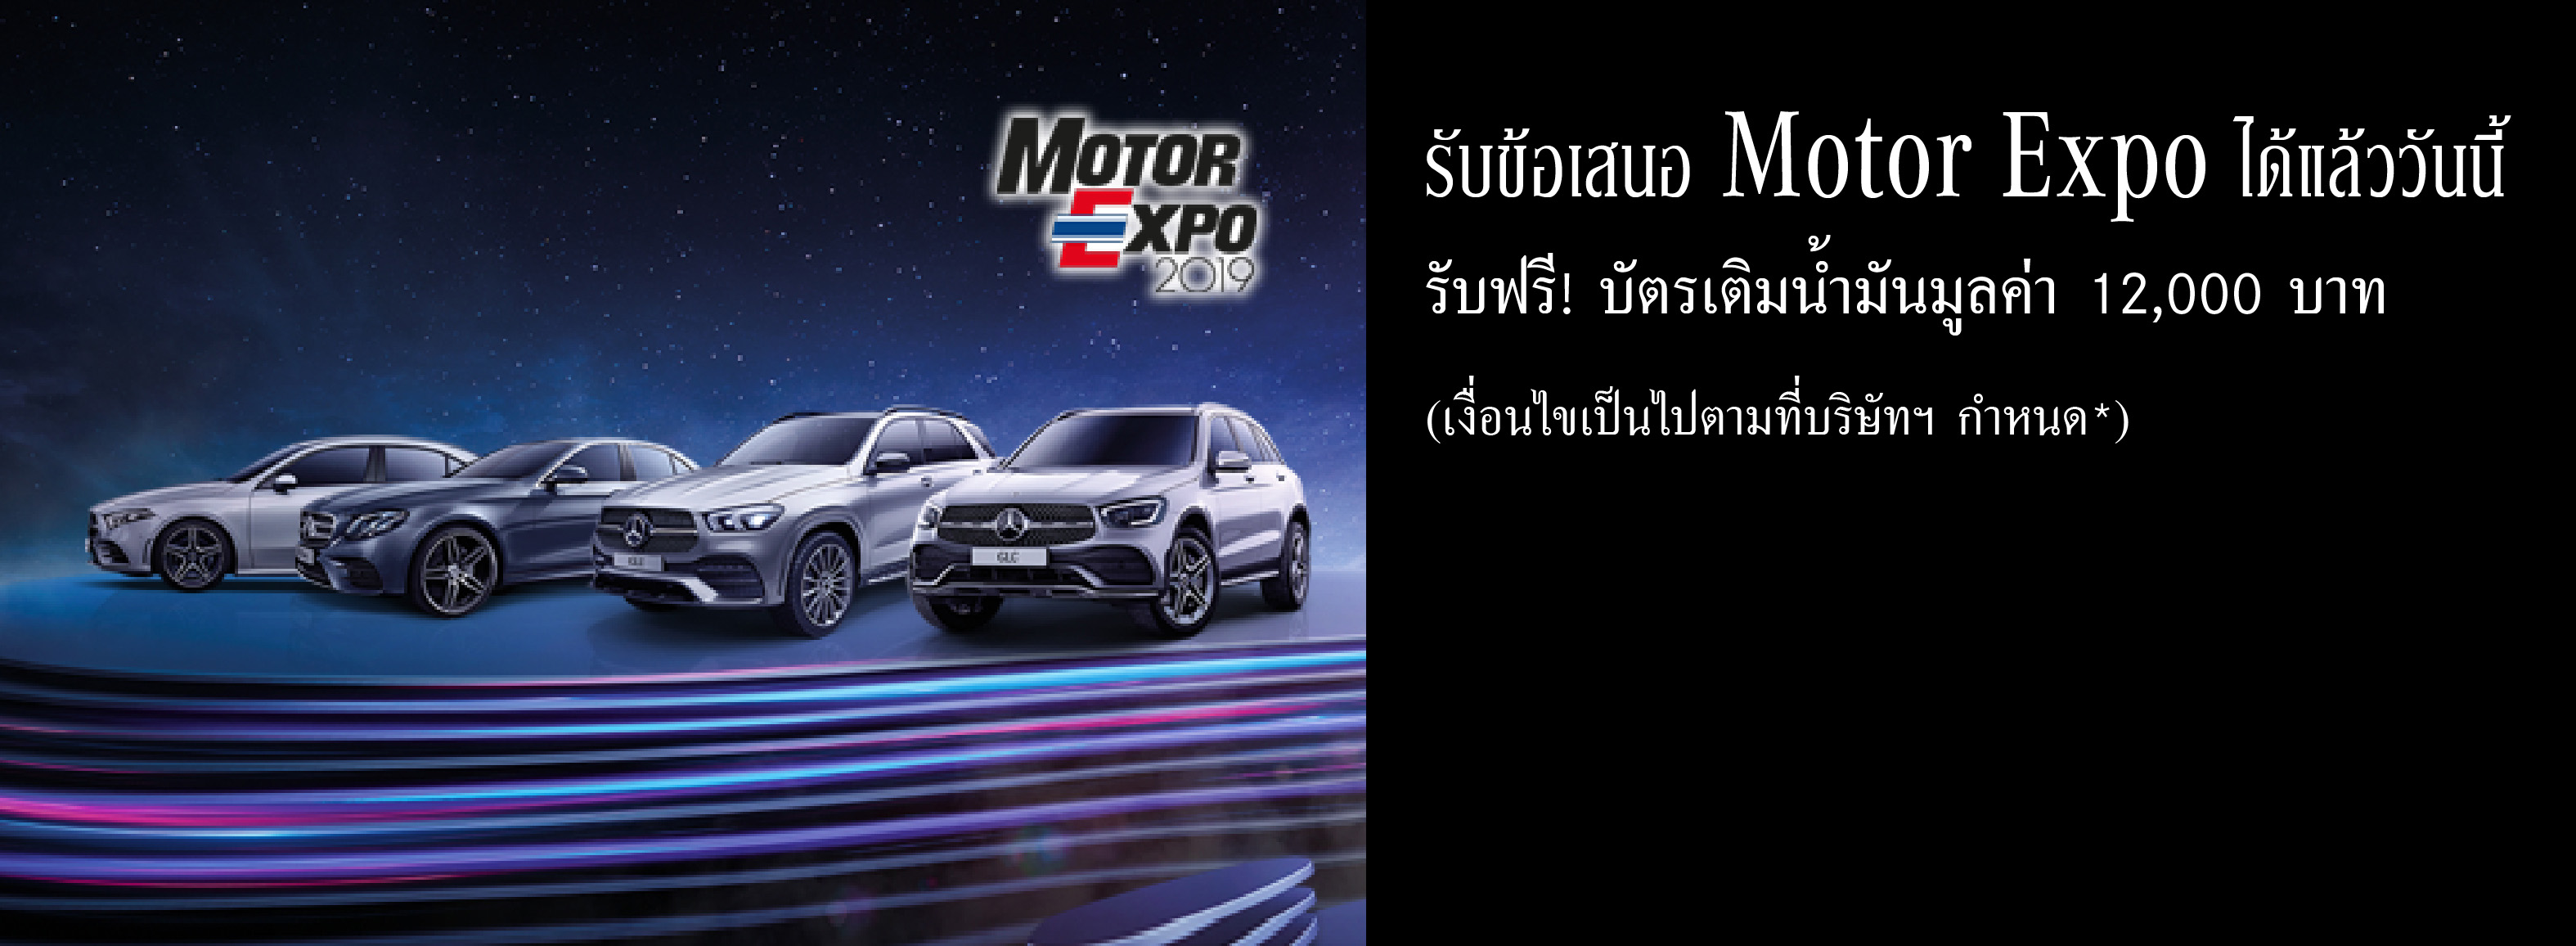 Sales Promotion Motor Expo 19